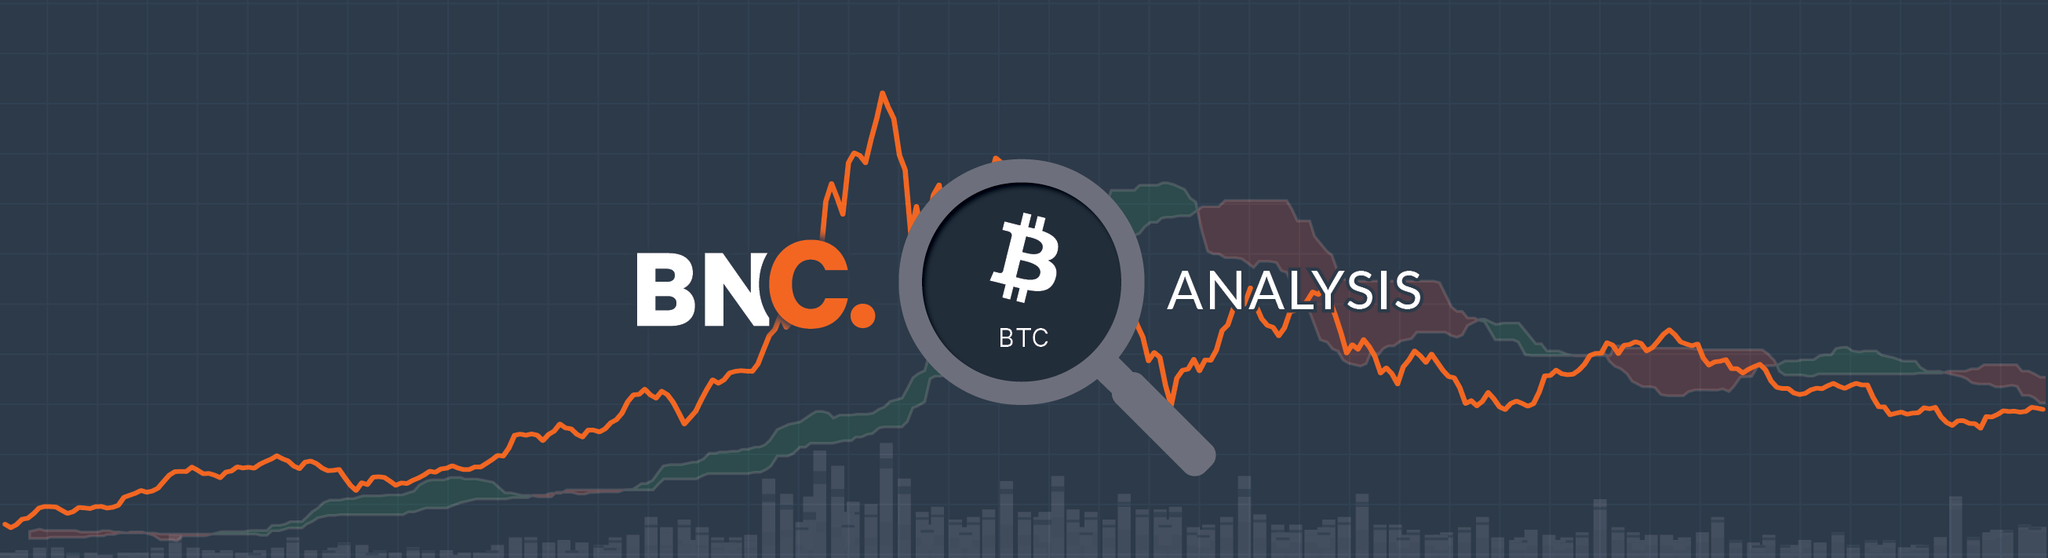 7becabc8c53 Dogecoin Price Analysis - Yahoo! Finance Gives DOGE A Bone » Brave New Coin